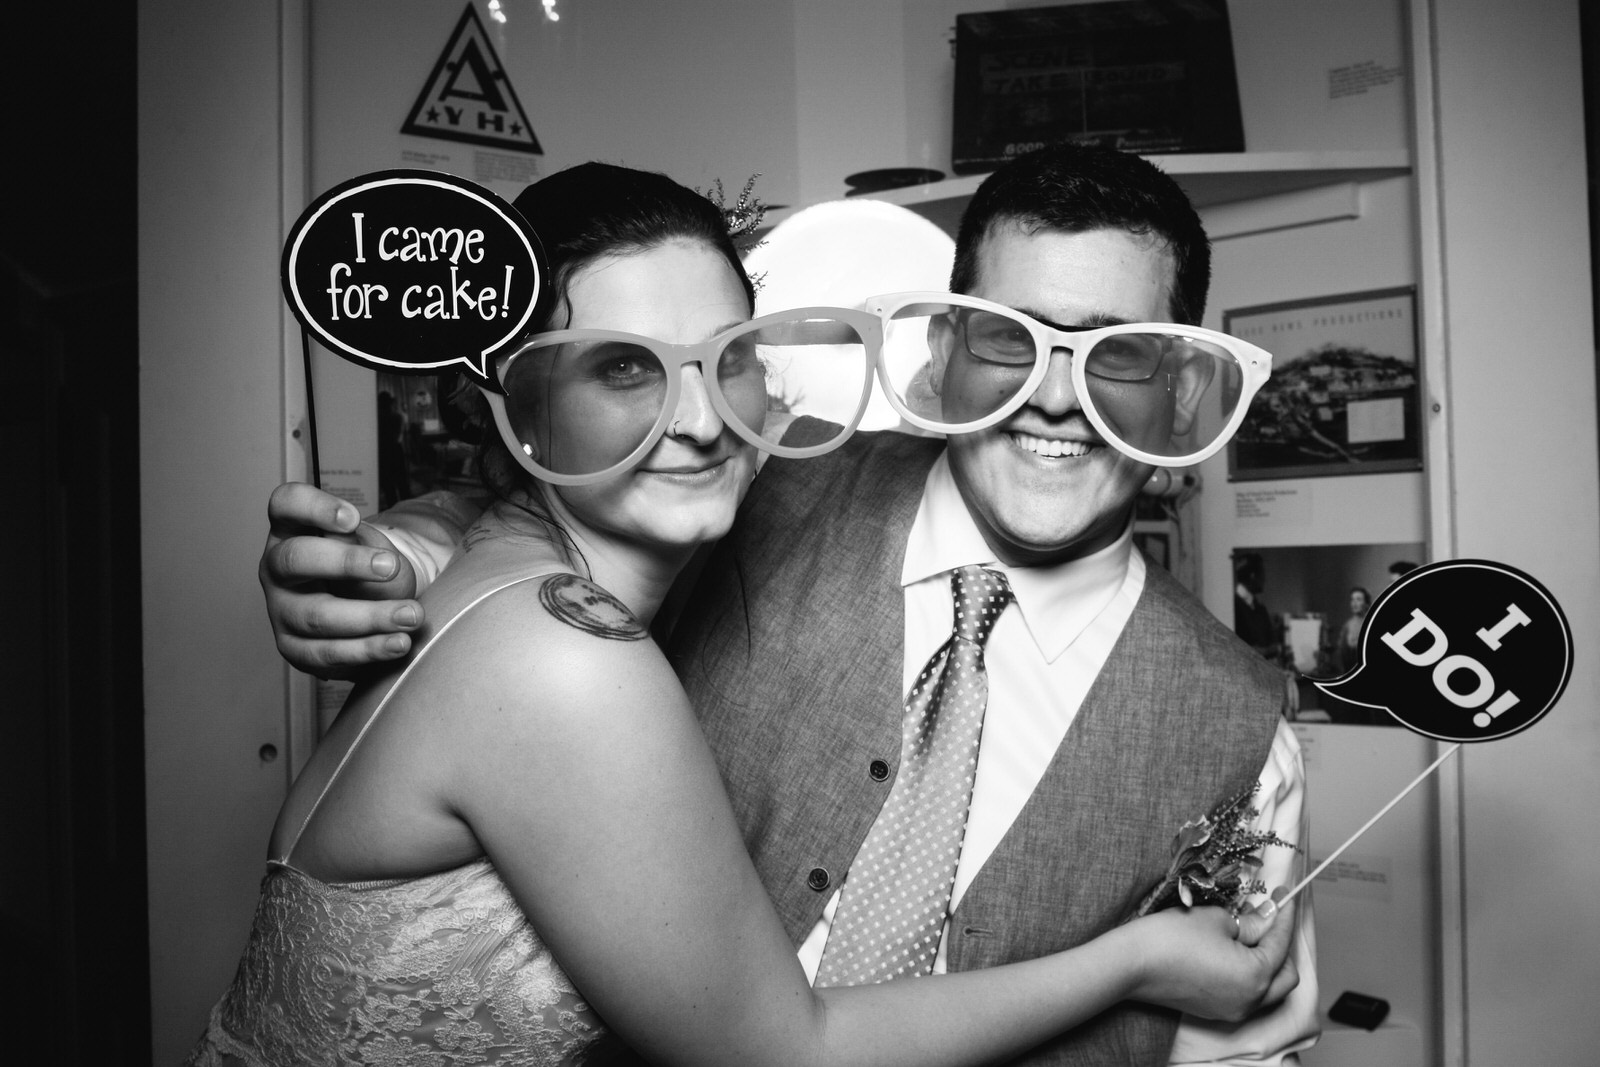 Richard-Donna-Wedding-Photo-Booth-17.jpg